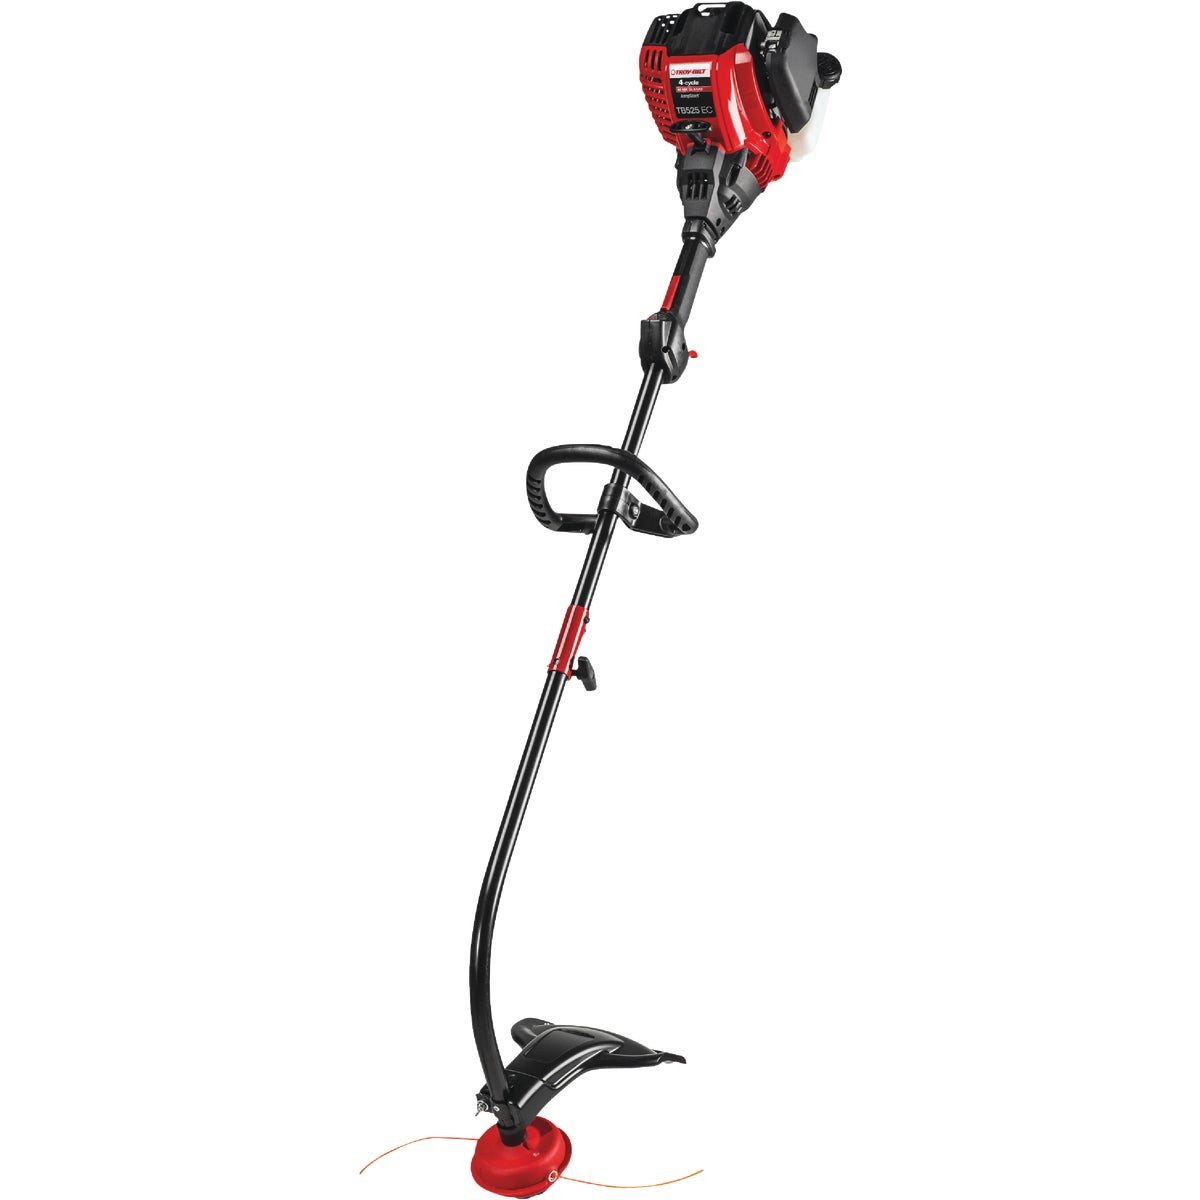 4CYC CURVE SHAFT TRIMMER